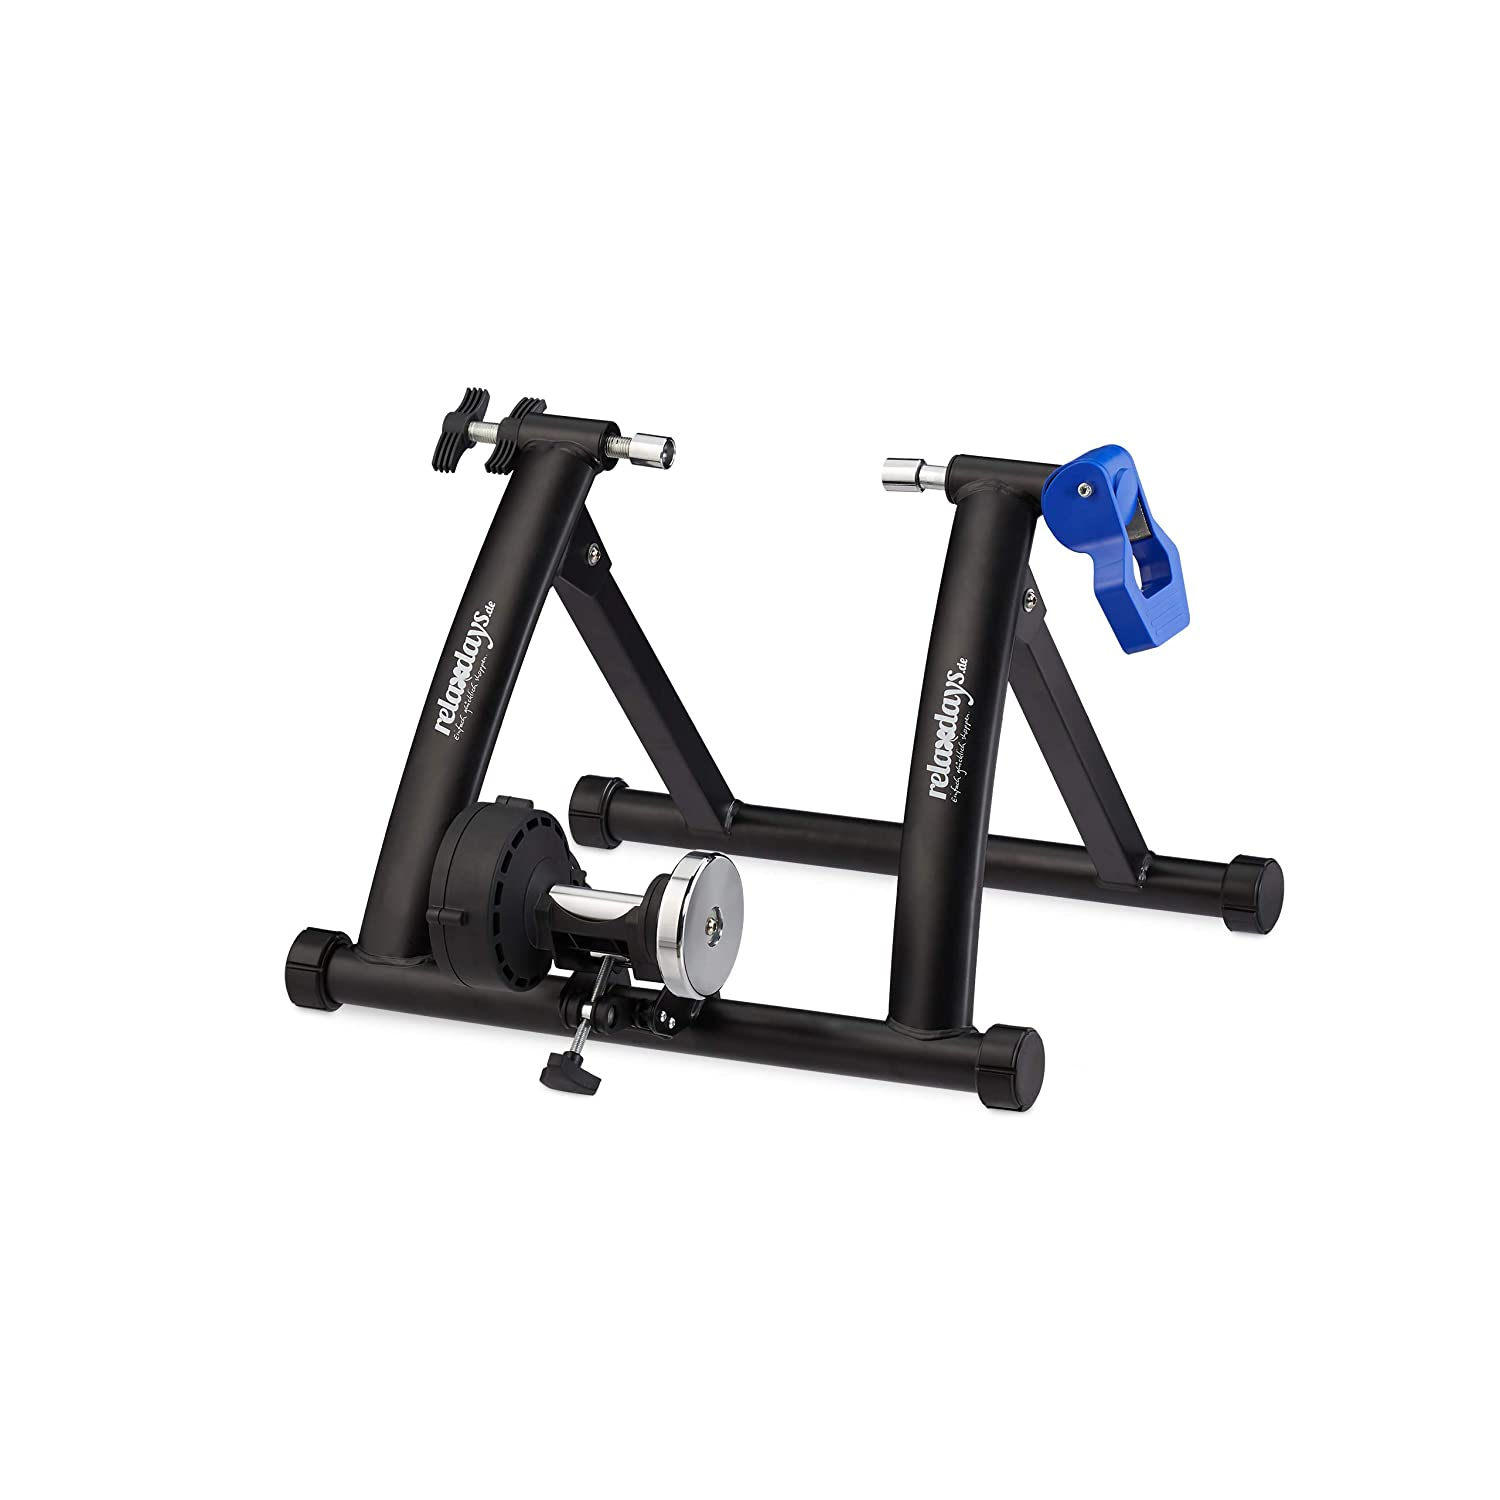 Adults Wheel Trainer Bicycle Folding Bike Trainer for 26-28 Inch Tyres Indoor Magnetic Brake Non-Slip Black 41 x 54.5 x 60 cm Relaxdays Unisex